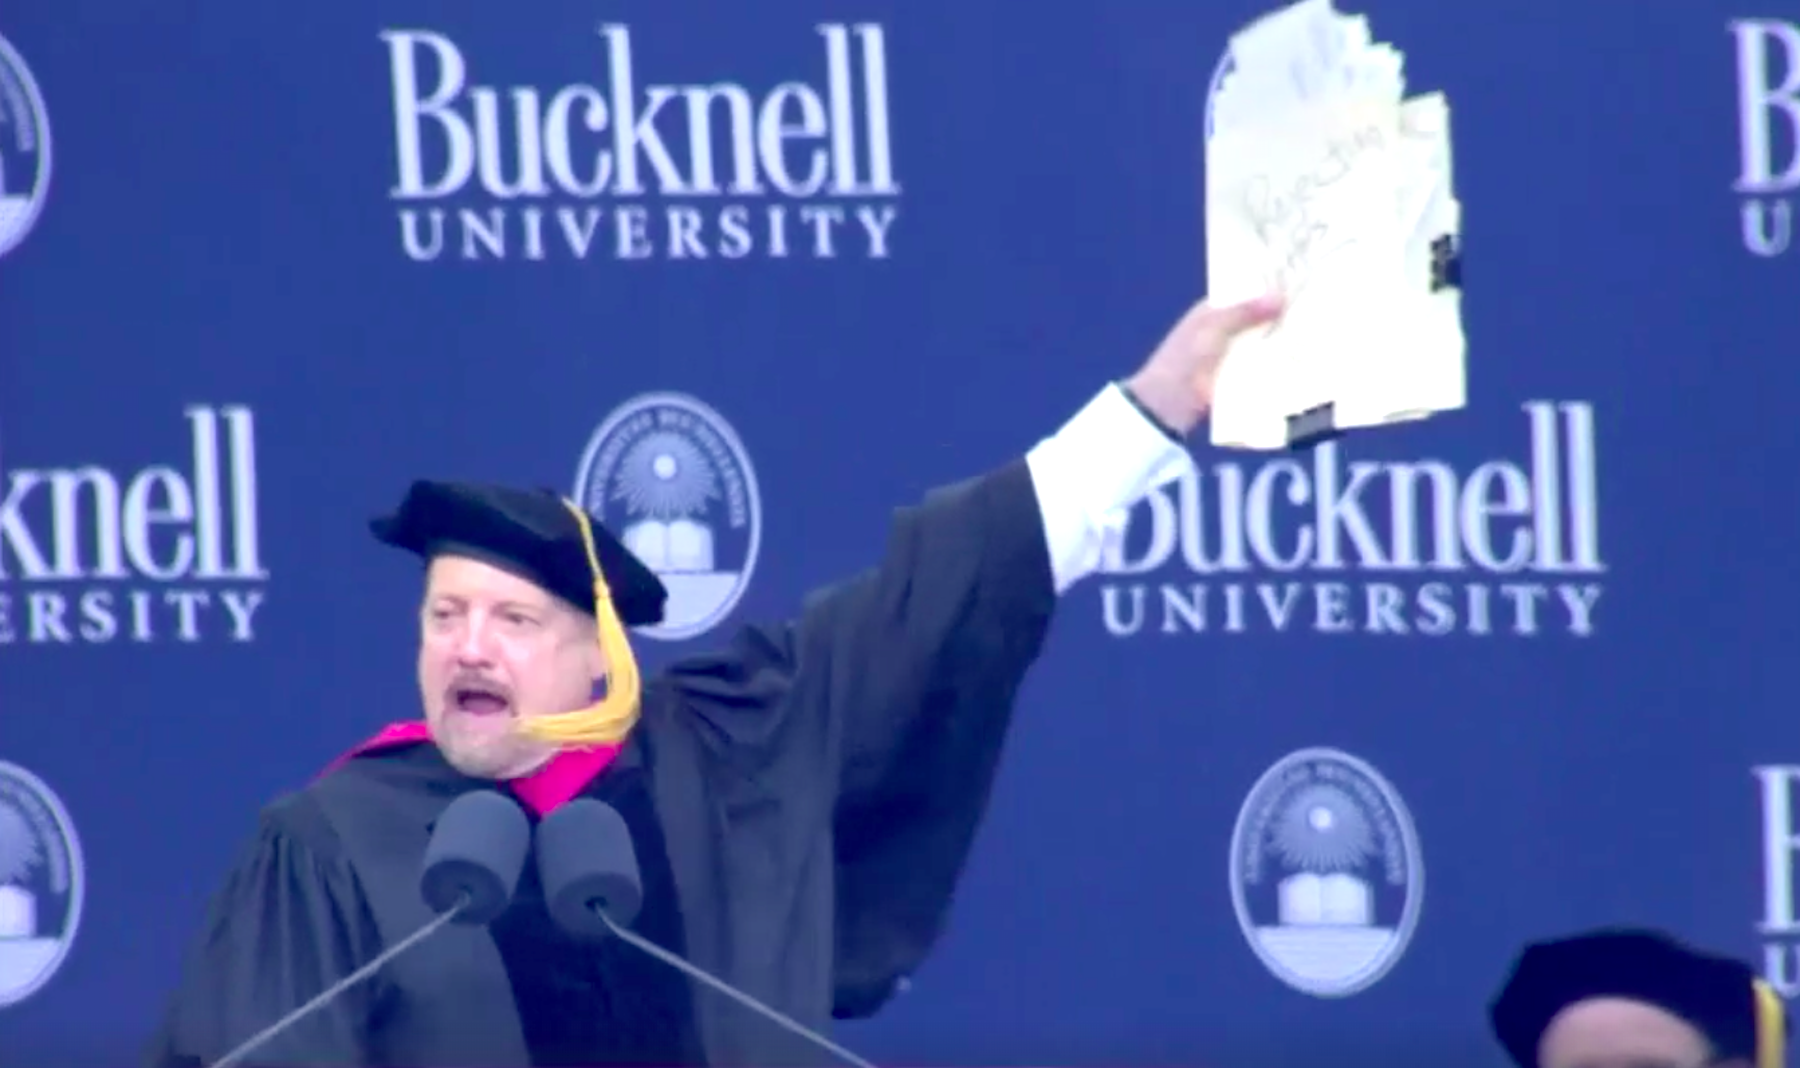 Bucknell Graduation 2020.Jim Cramer Shares His Heart Wrenching Story Of Hitting Rock Bottom Just A Year After Graduating From College